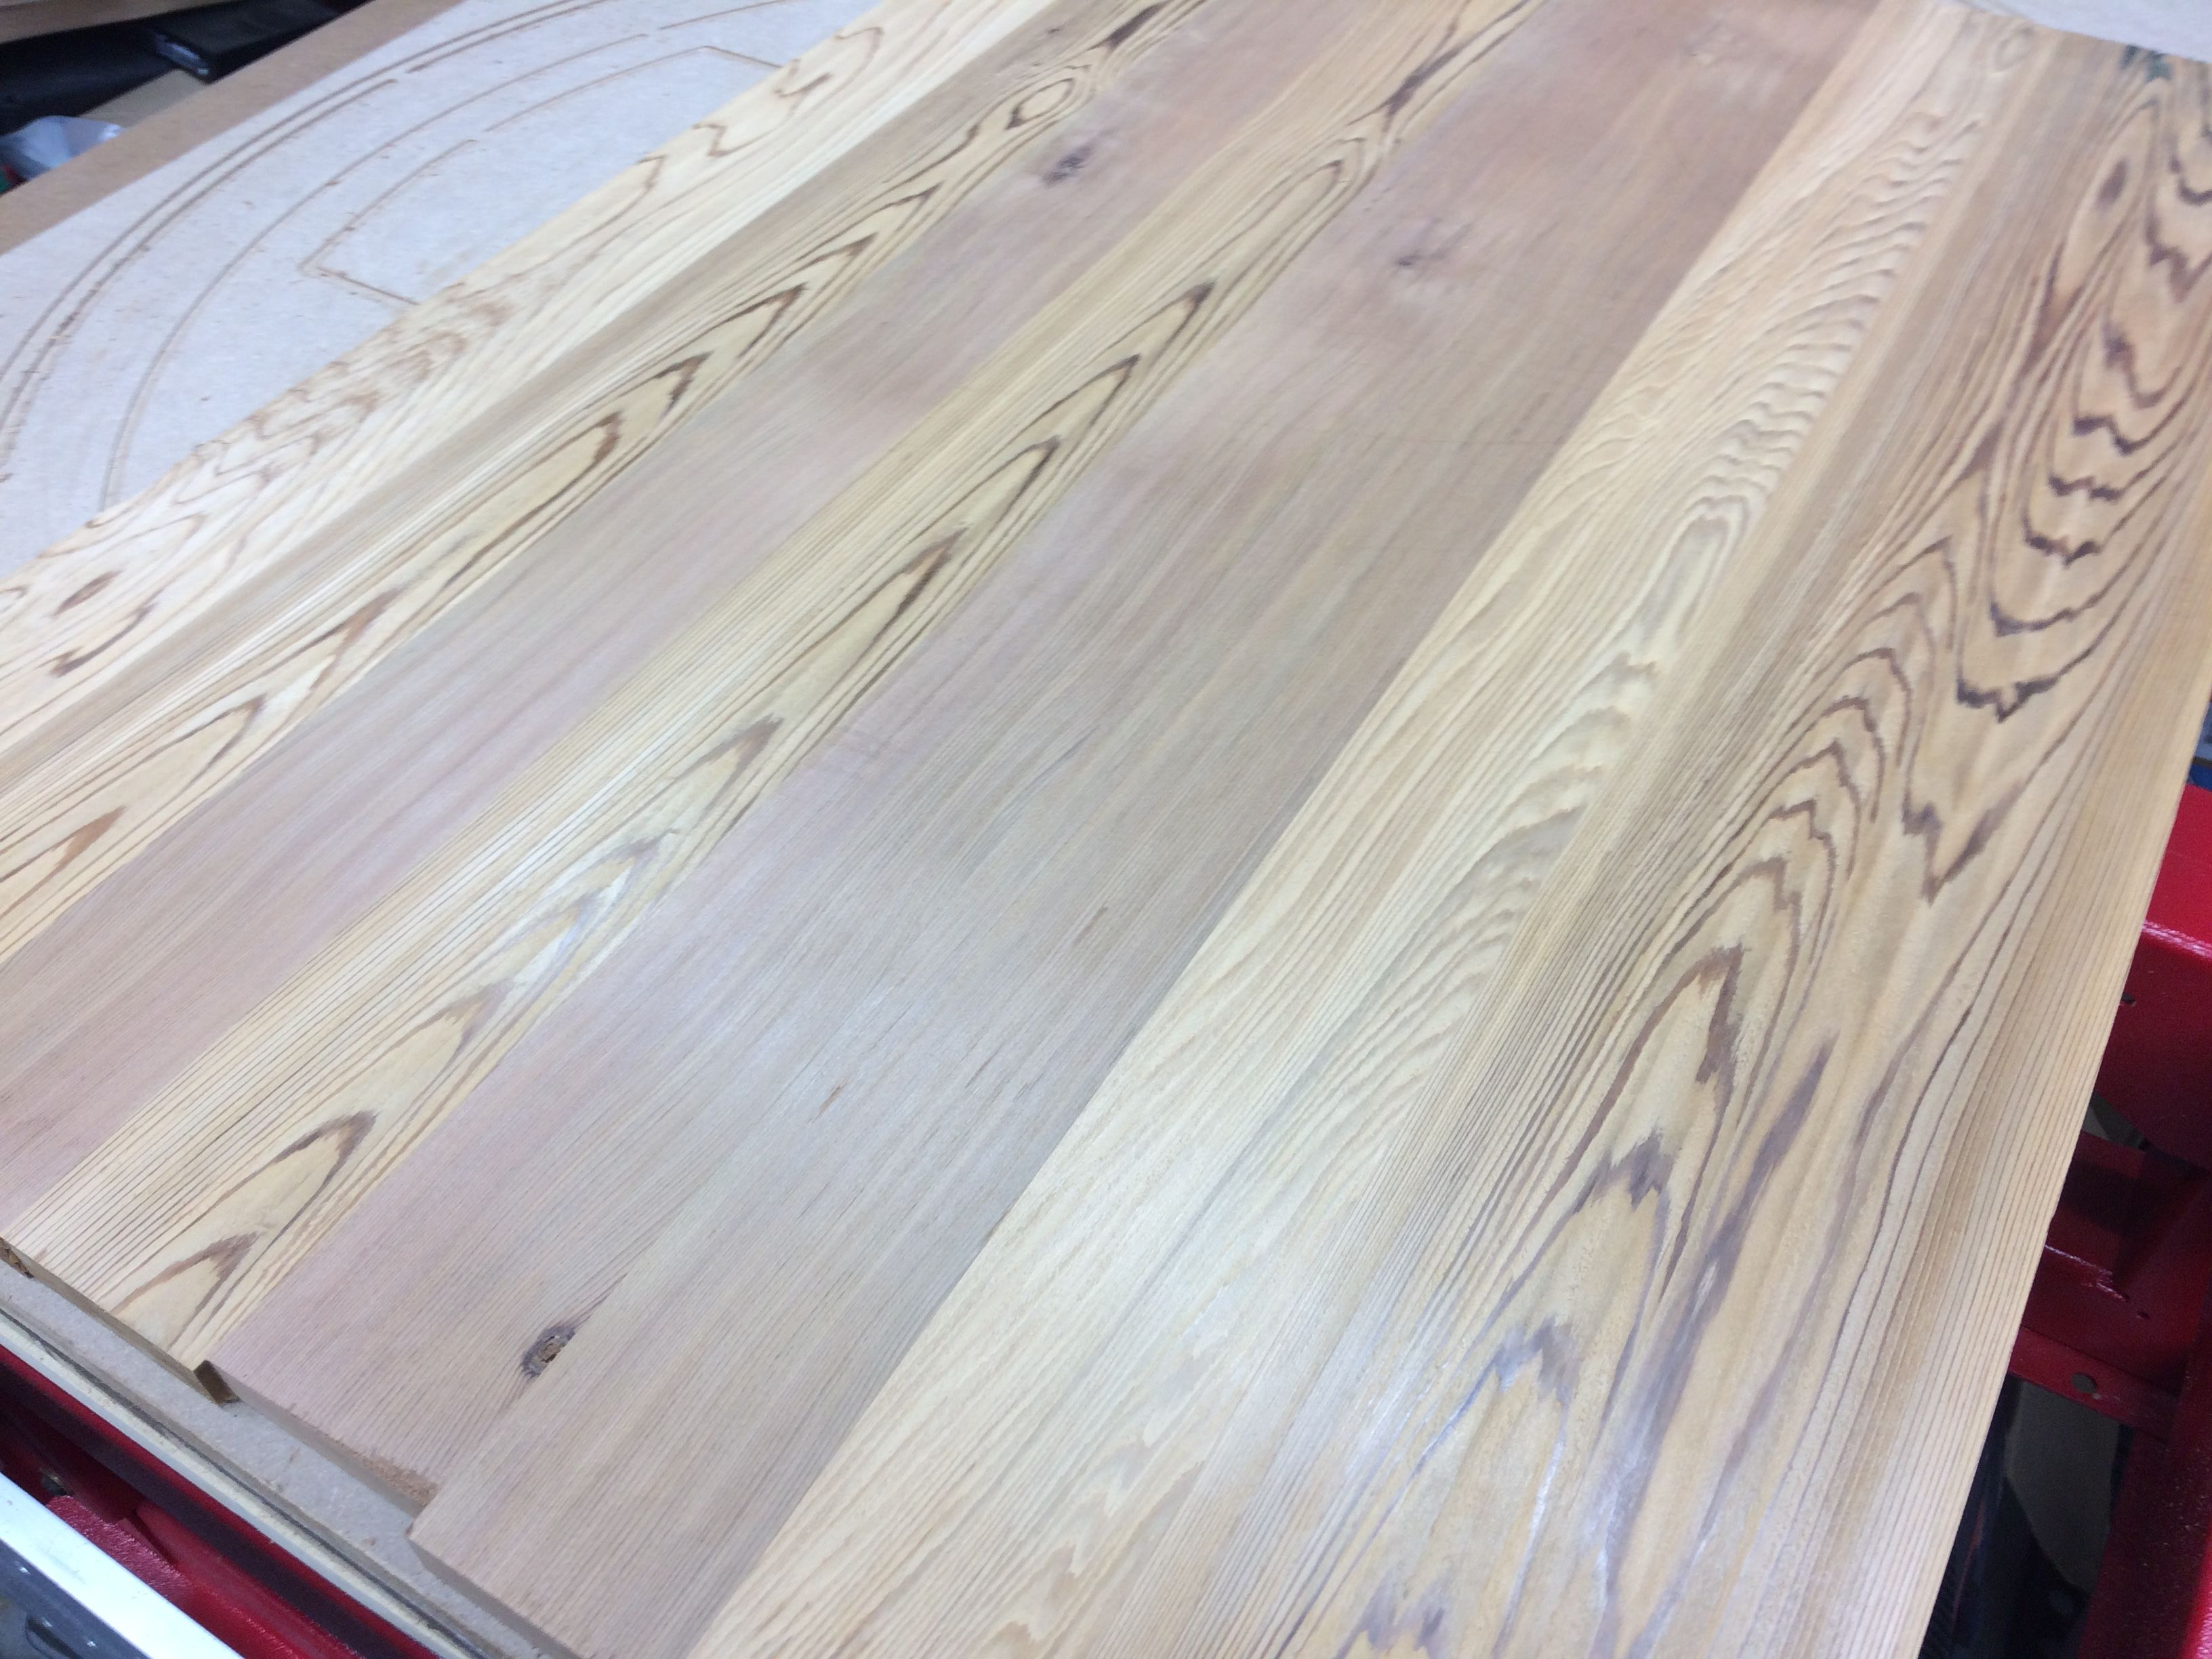 cedar project boards surfaced planed on the cnc